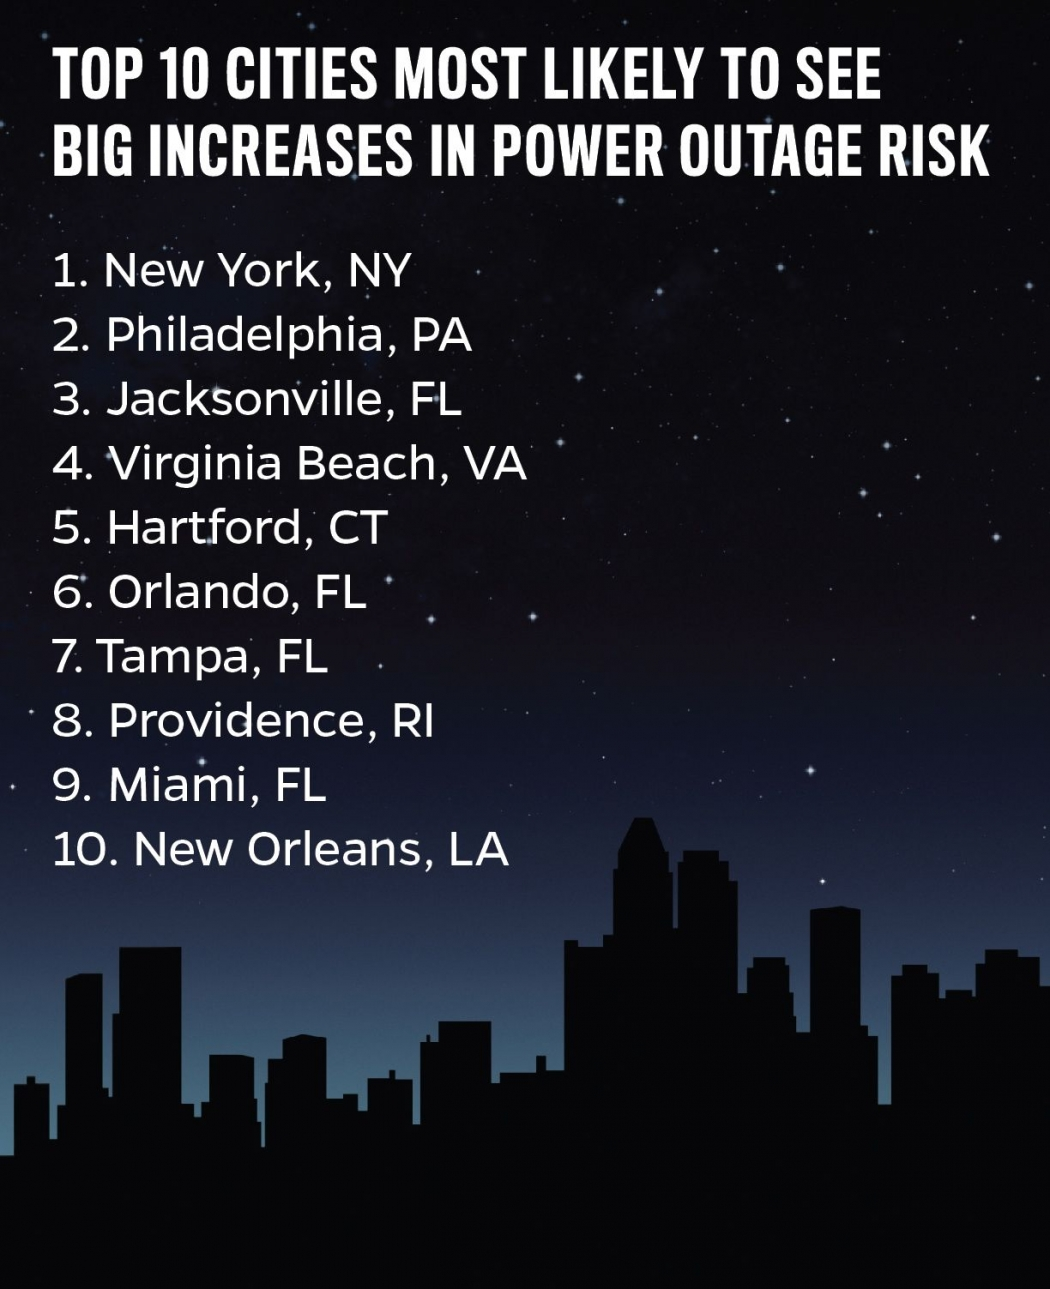 NYC Tops List for Seeing Increased Storm Outages | Climate Central